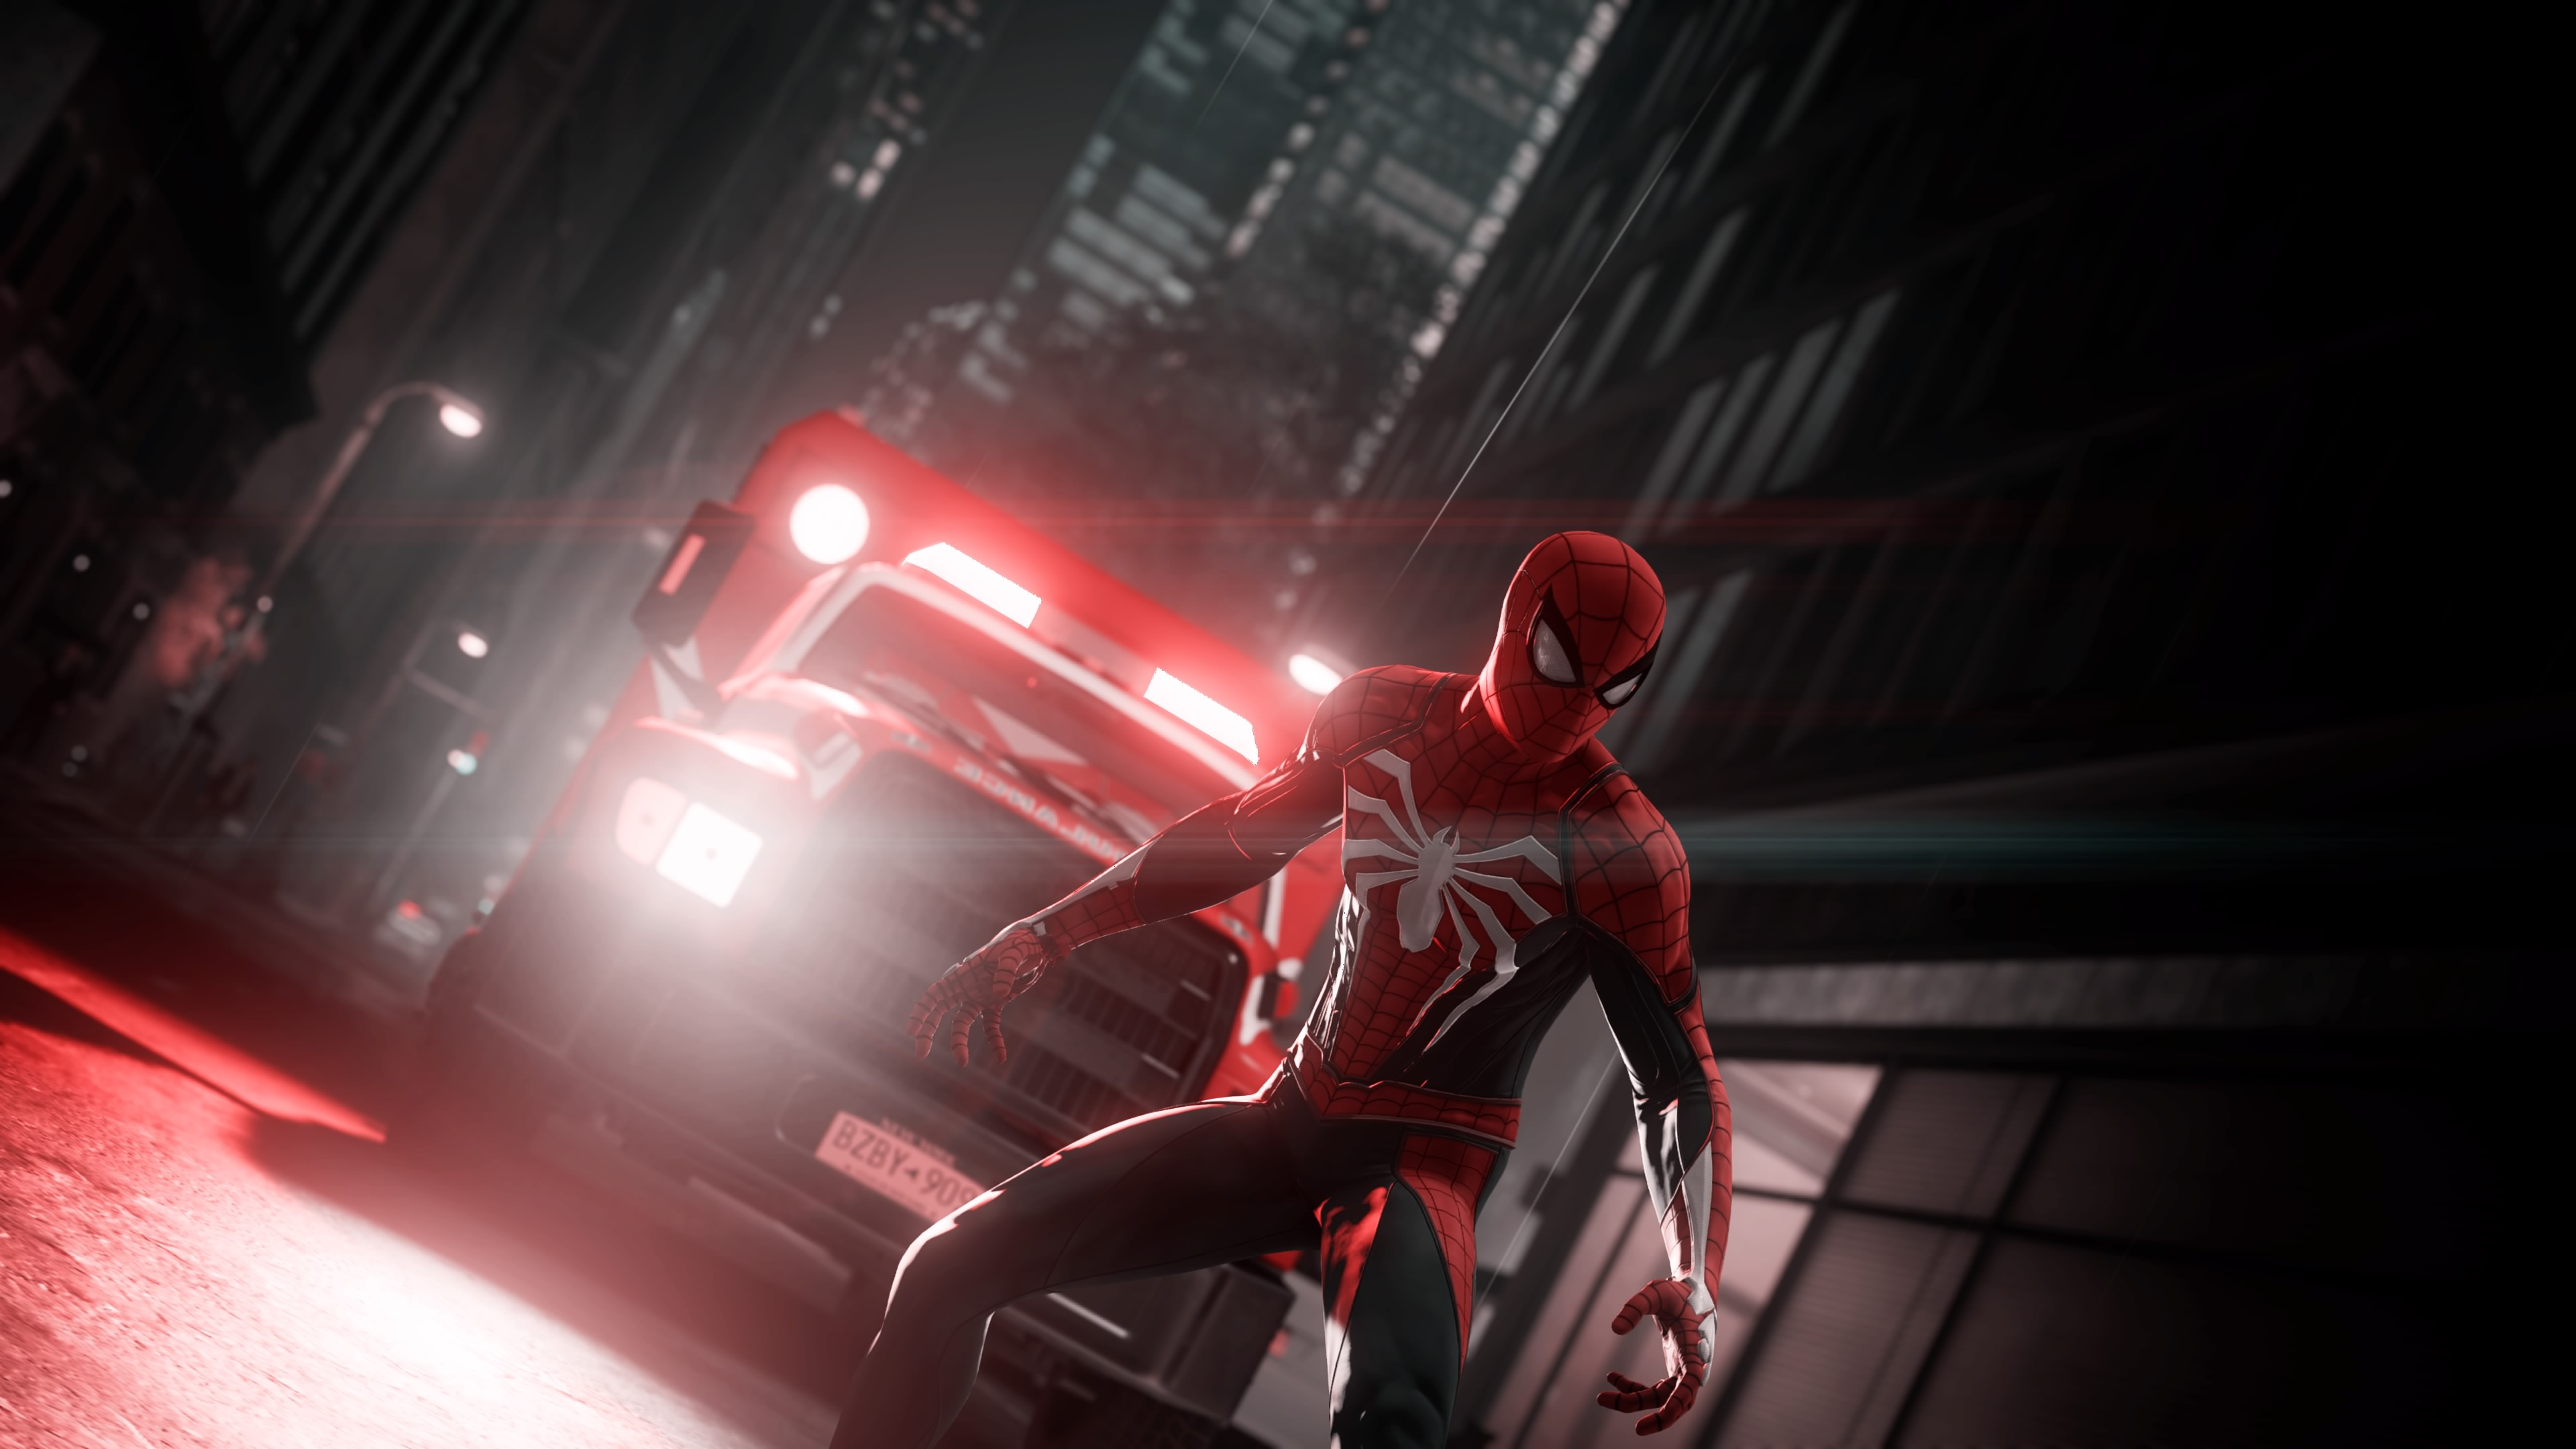 Ps4 Spiderman 2018 4k Hd Games 4k Wallpapers Images